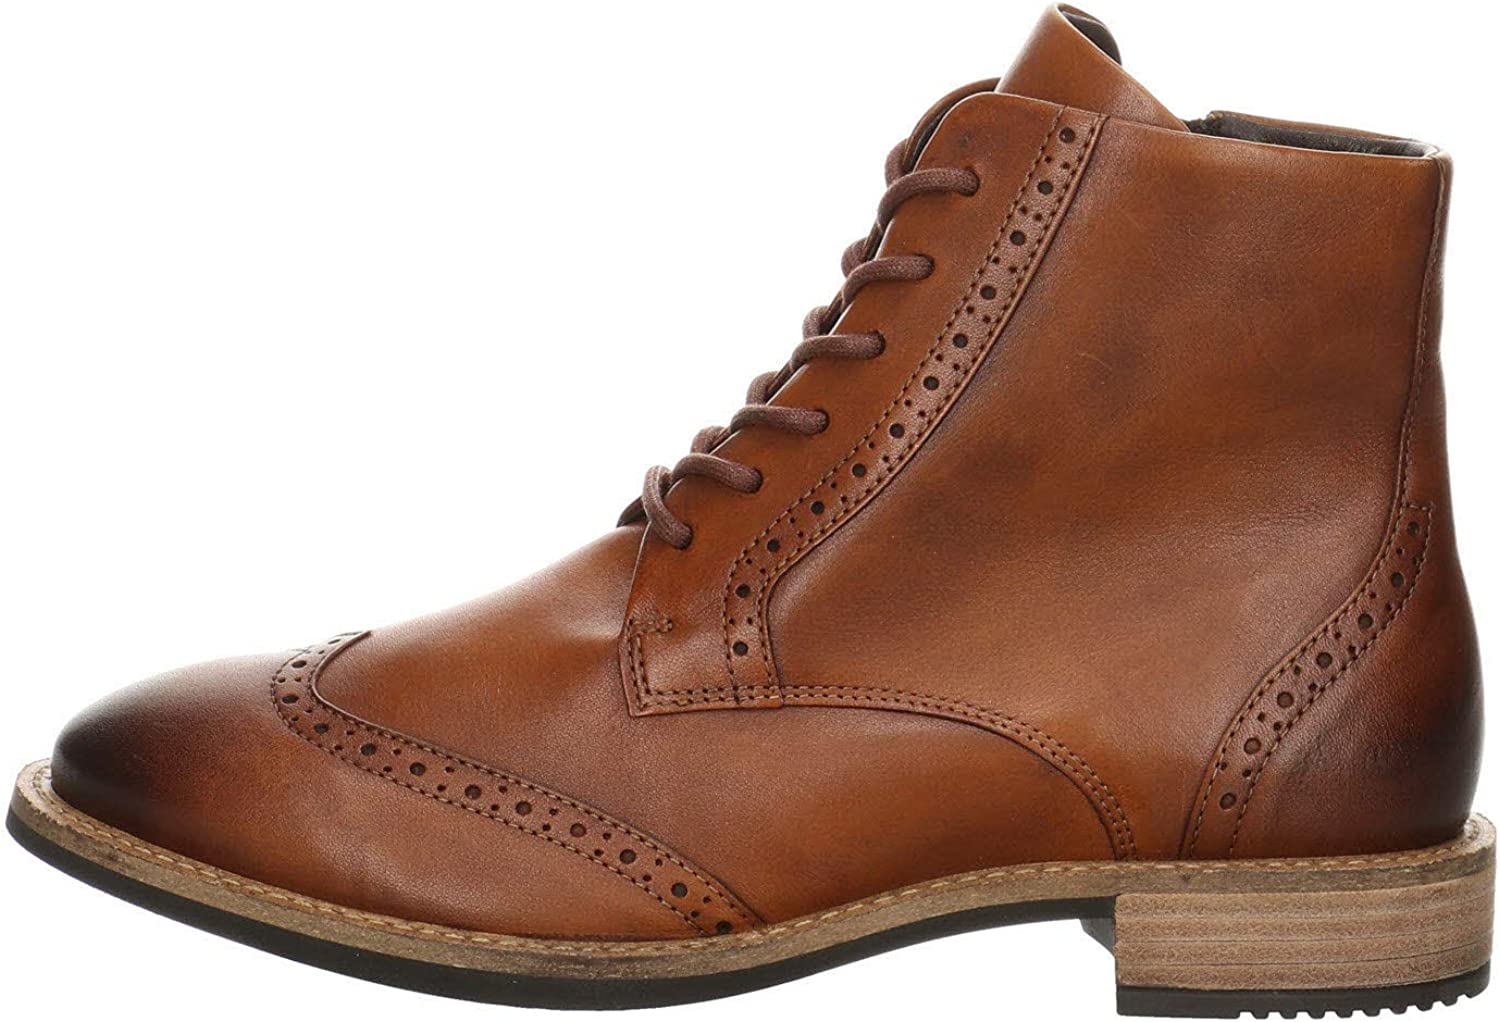 ECCO Quality inspection Women's Classic Soldering Boot Fashion